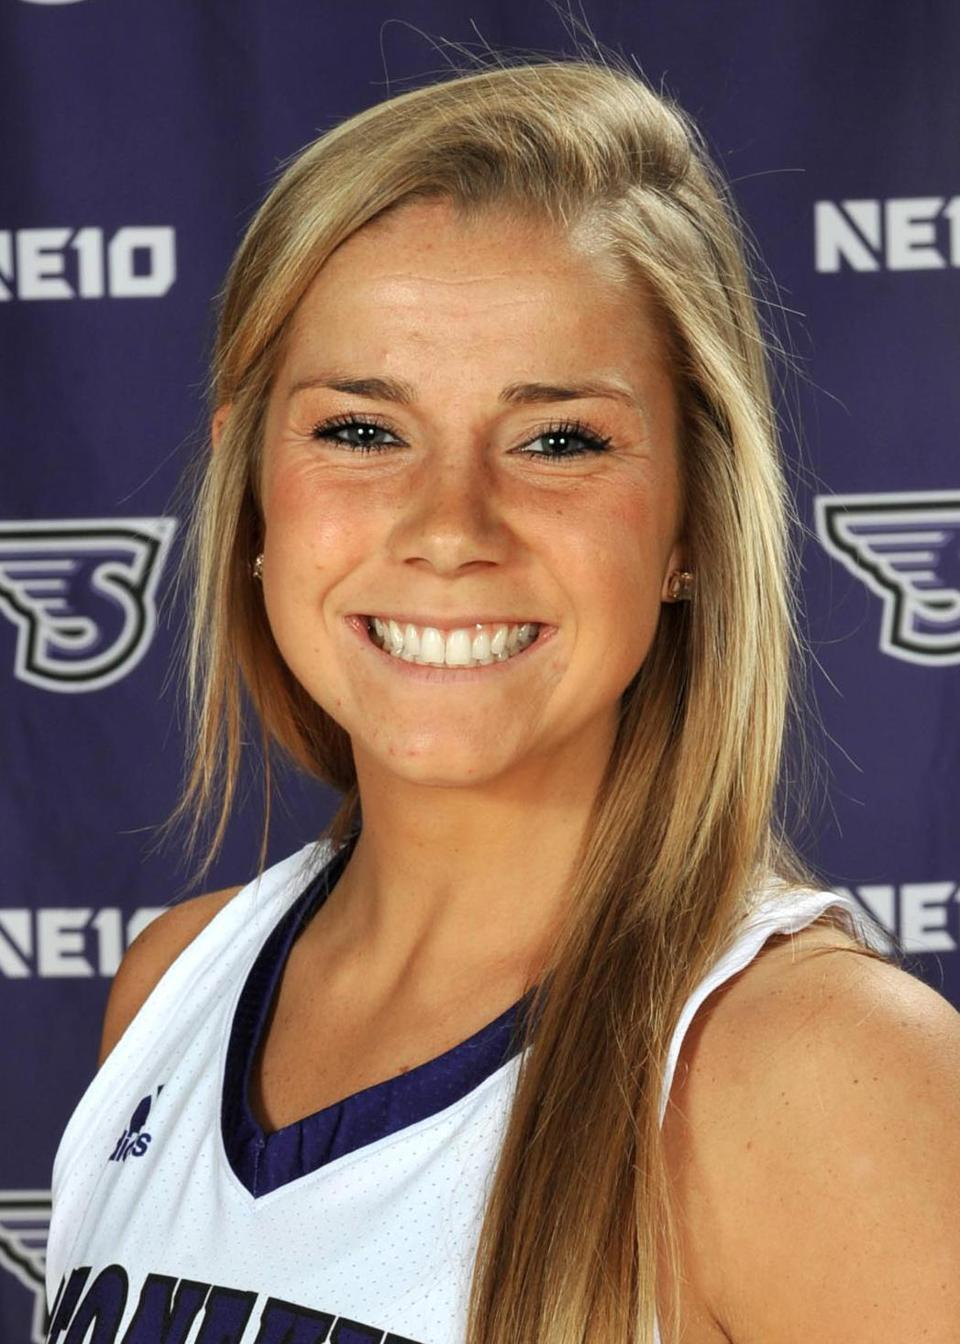 03sonoteworthy - Kelly Martin (Stonehill Athletics)